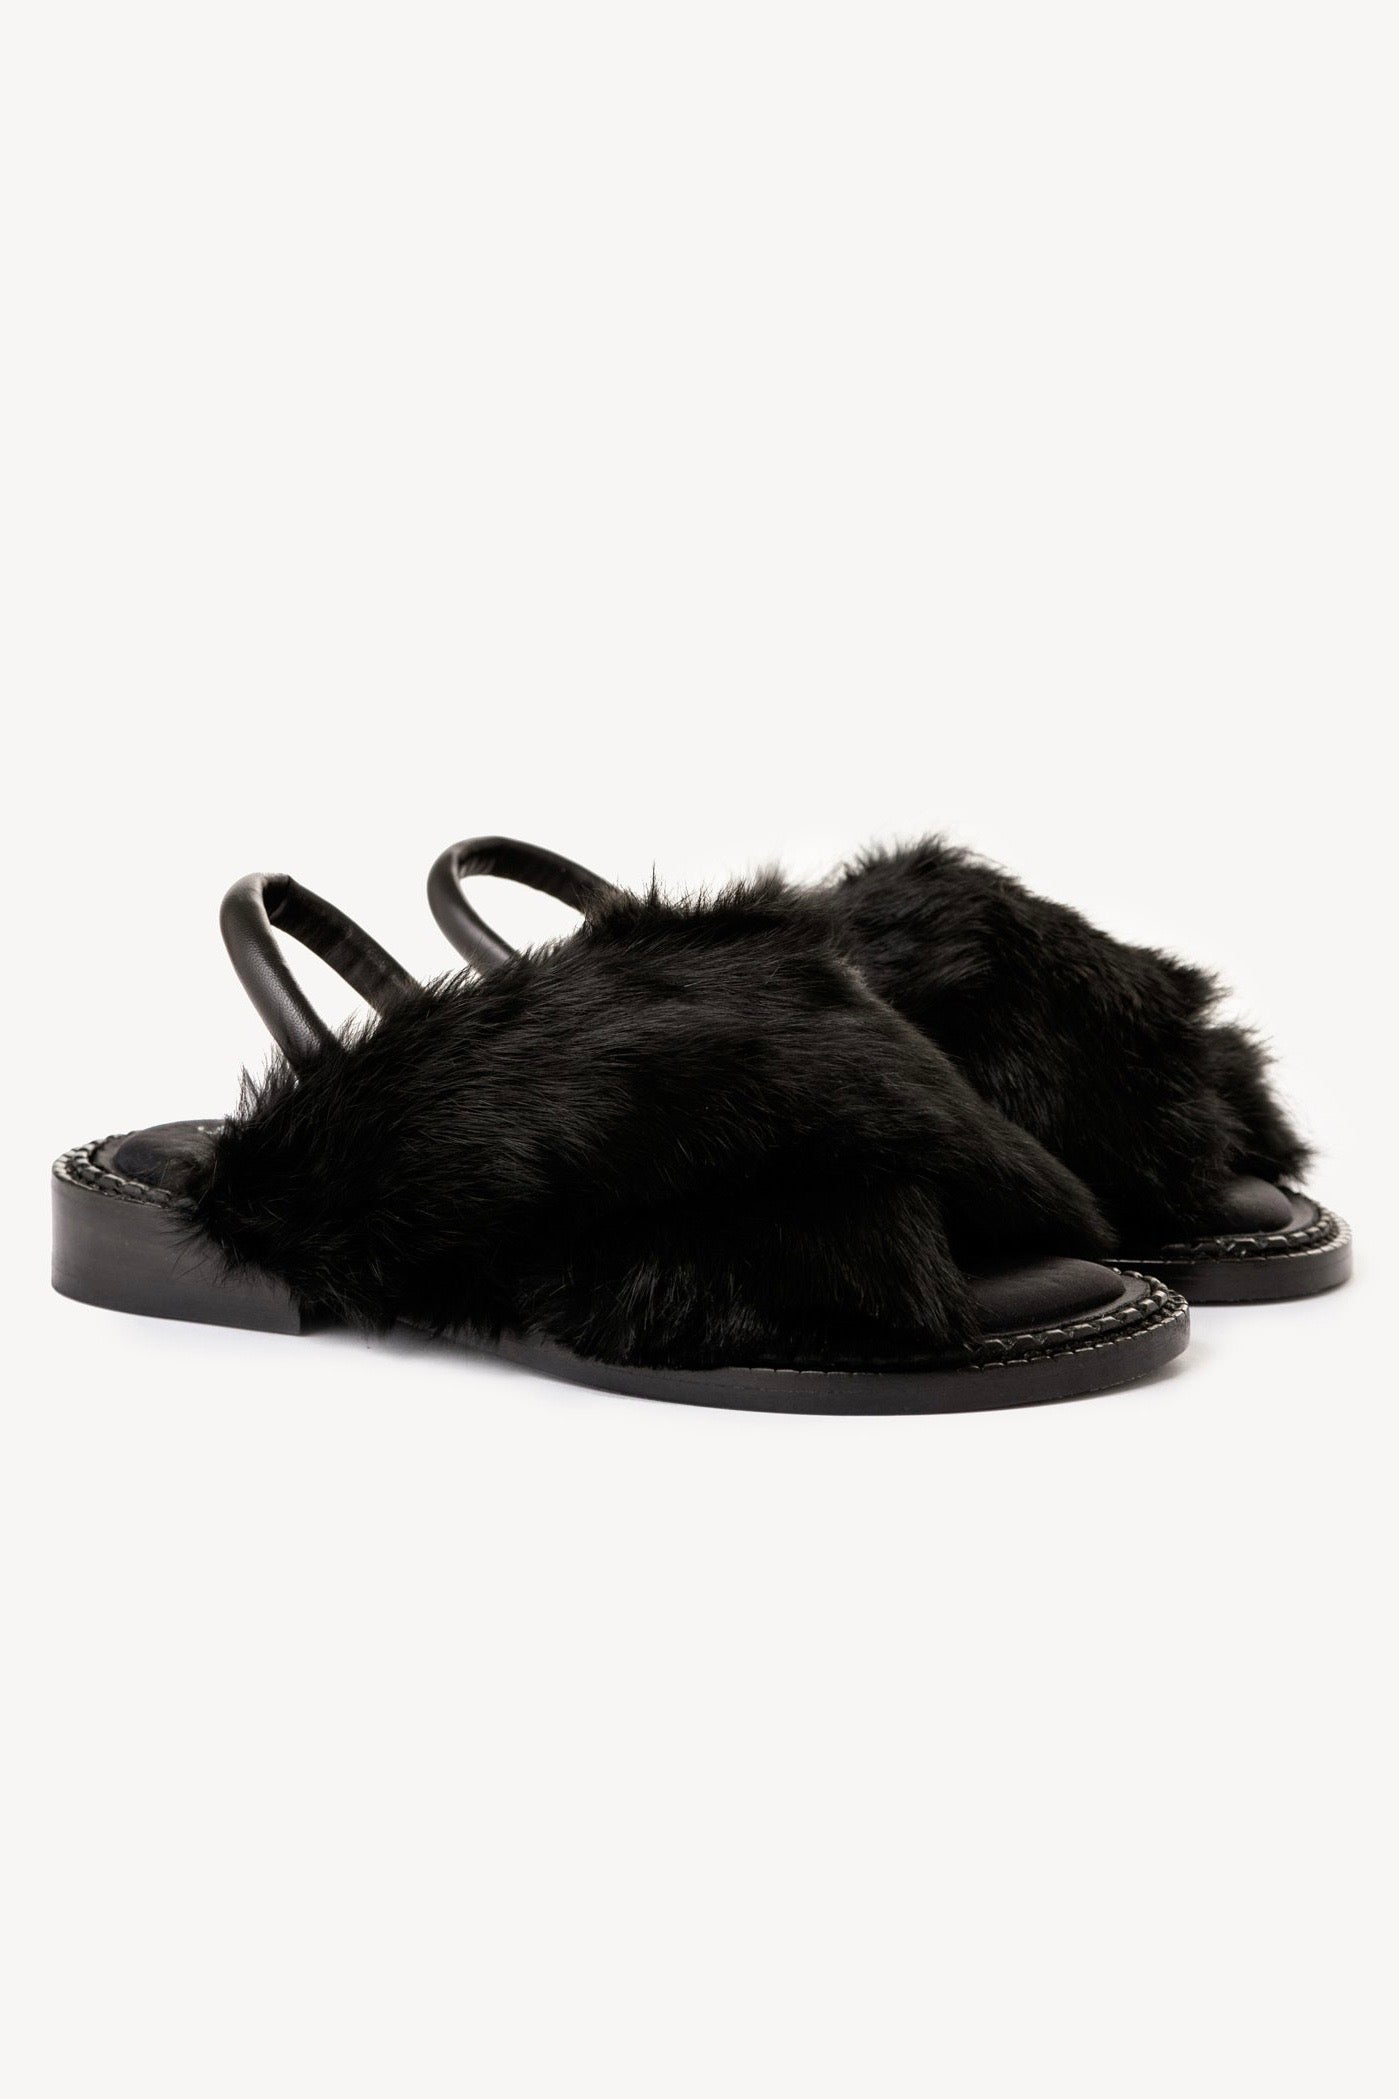 Robert Clergerie black bloss sandal